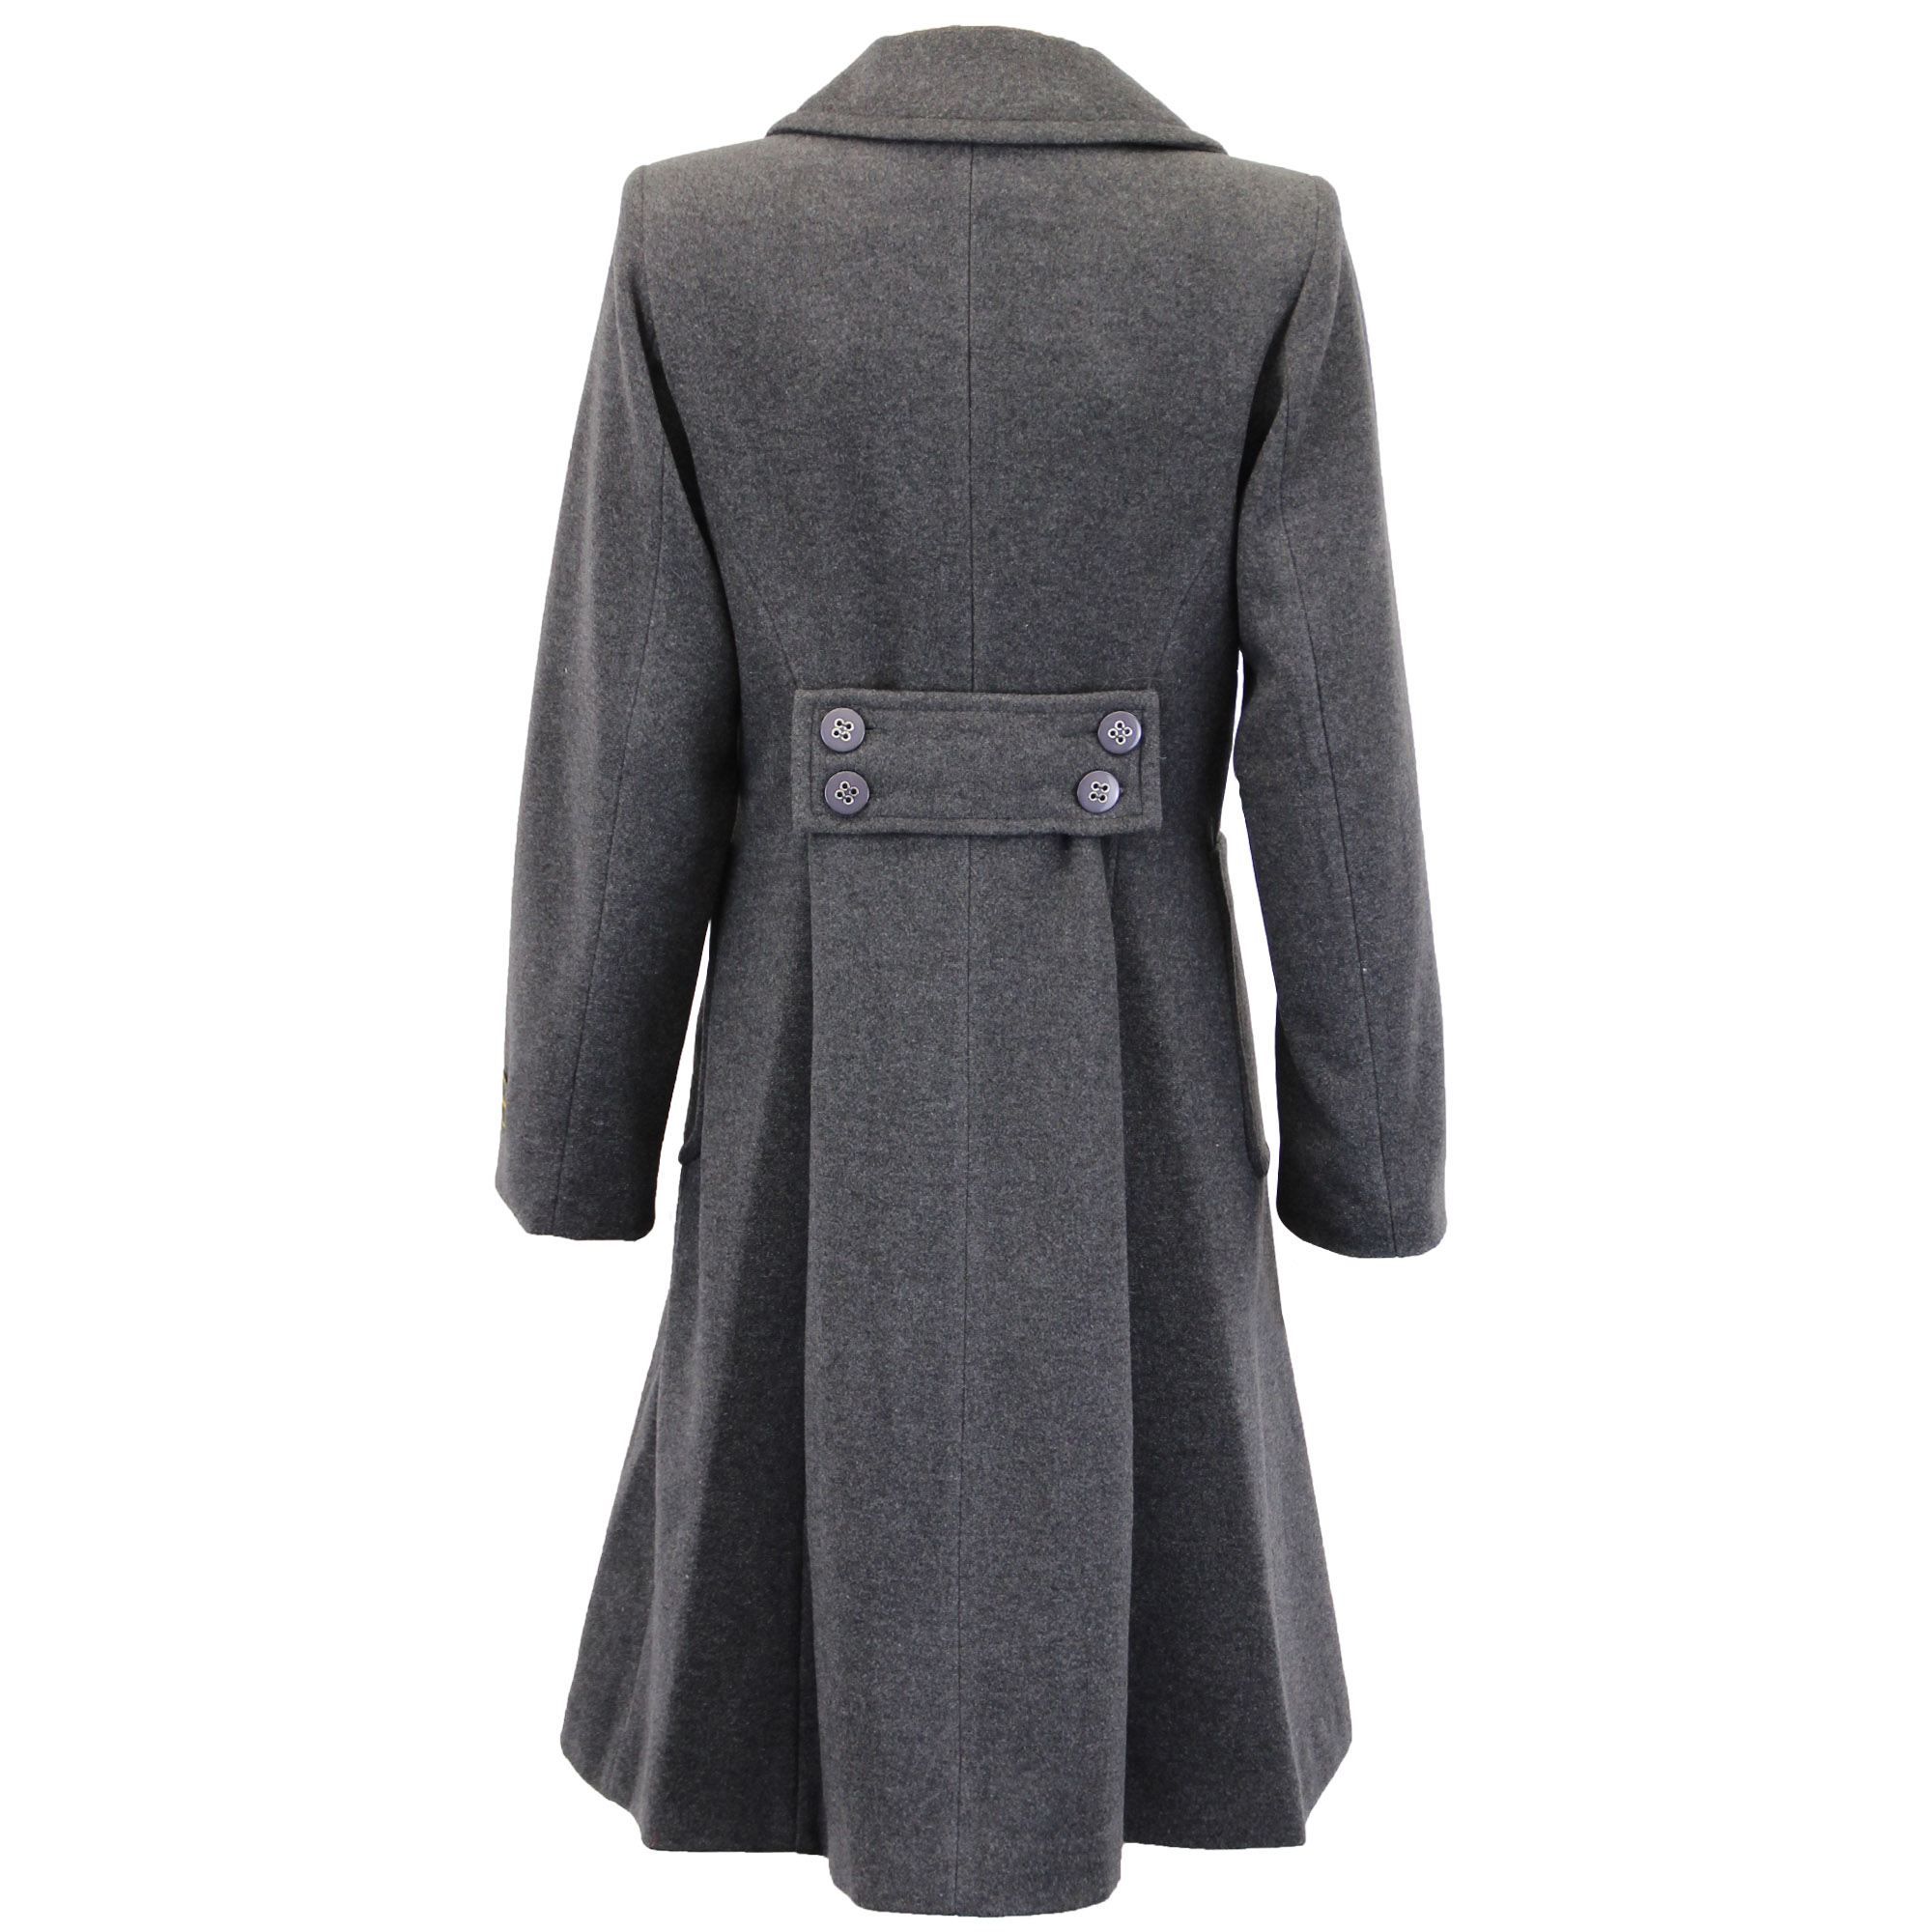 Women's Double Breasted Peacoats. Clothing. Women. Womens Coats & Jackets. Women's Double Breasted Peacoats. Showing 48 of 53 results that match your query. Product - Winter Pea Coat FOR Women- Women Trendy Double Breasted Wool Pea Coat 3 Colors: Wine Red, Black, Brown BEDYDS. Clearance. Product Image.